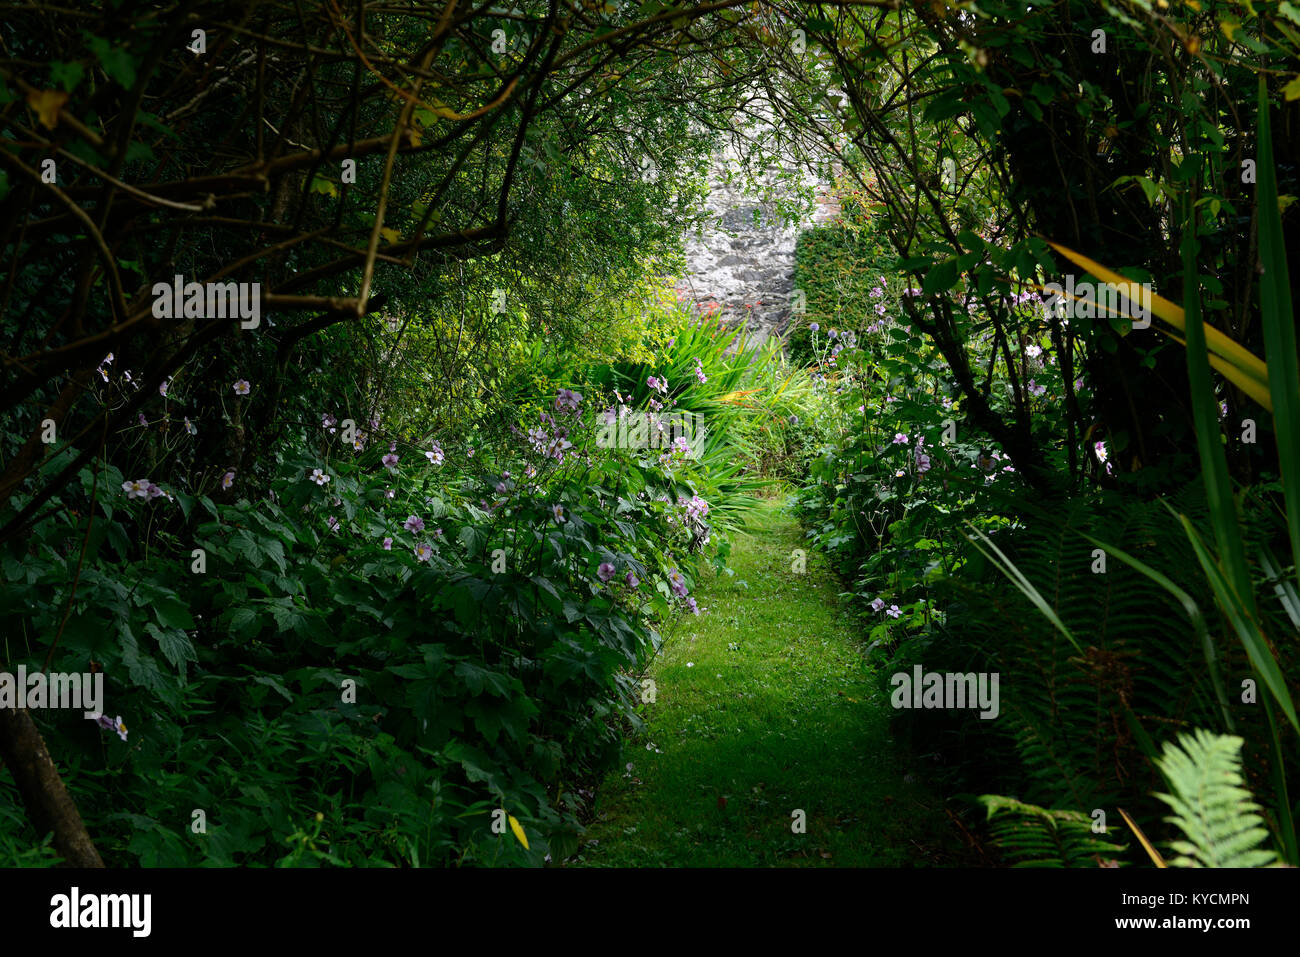 Listoke House, Edwardian garden,gardens,formal,walled,garden,path,pathway,overgrown,lead,leading,dilapidated,secluded,mystery,secret,RM - Stock Image